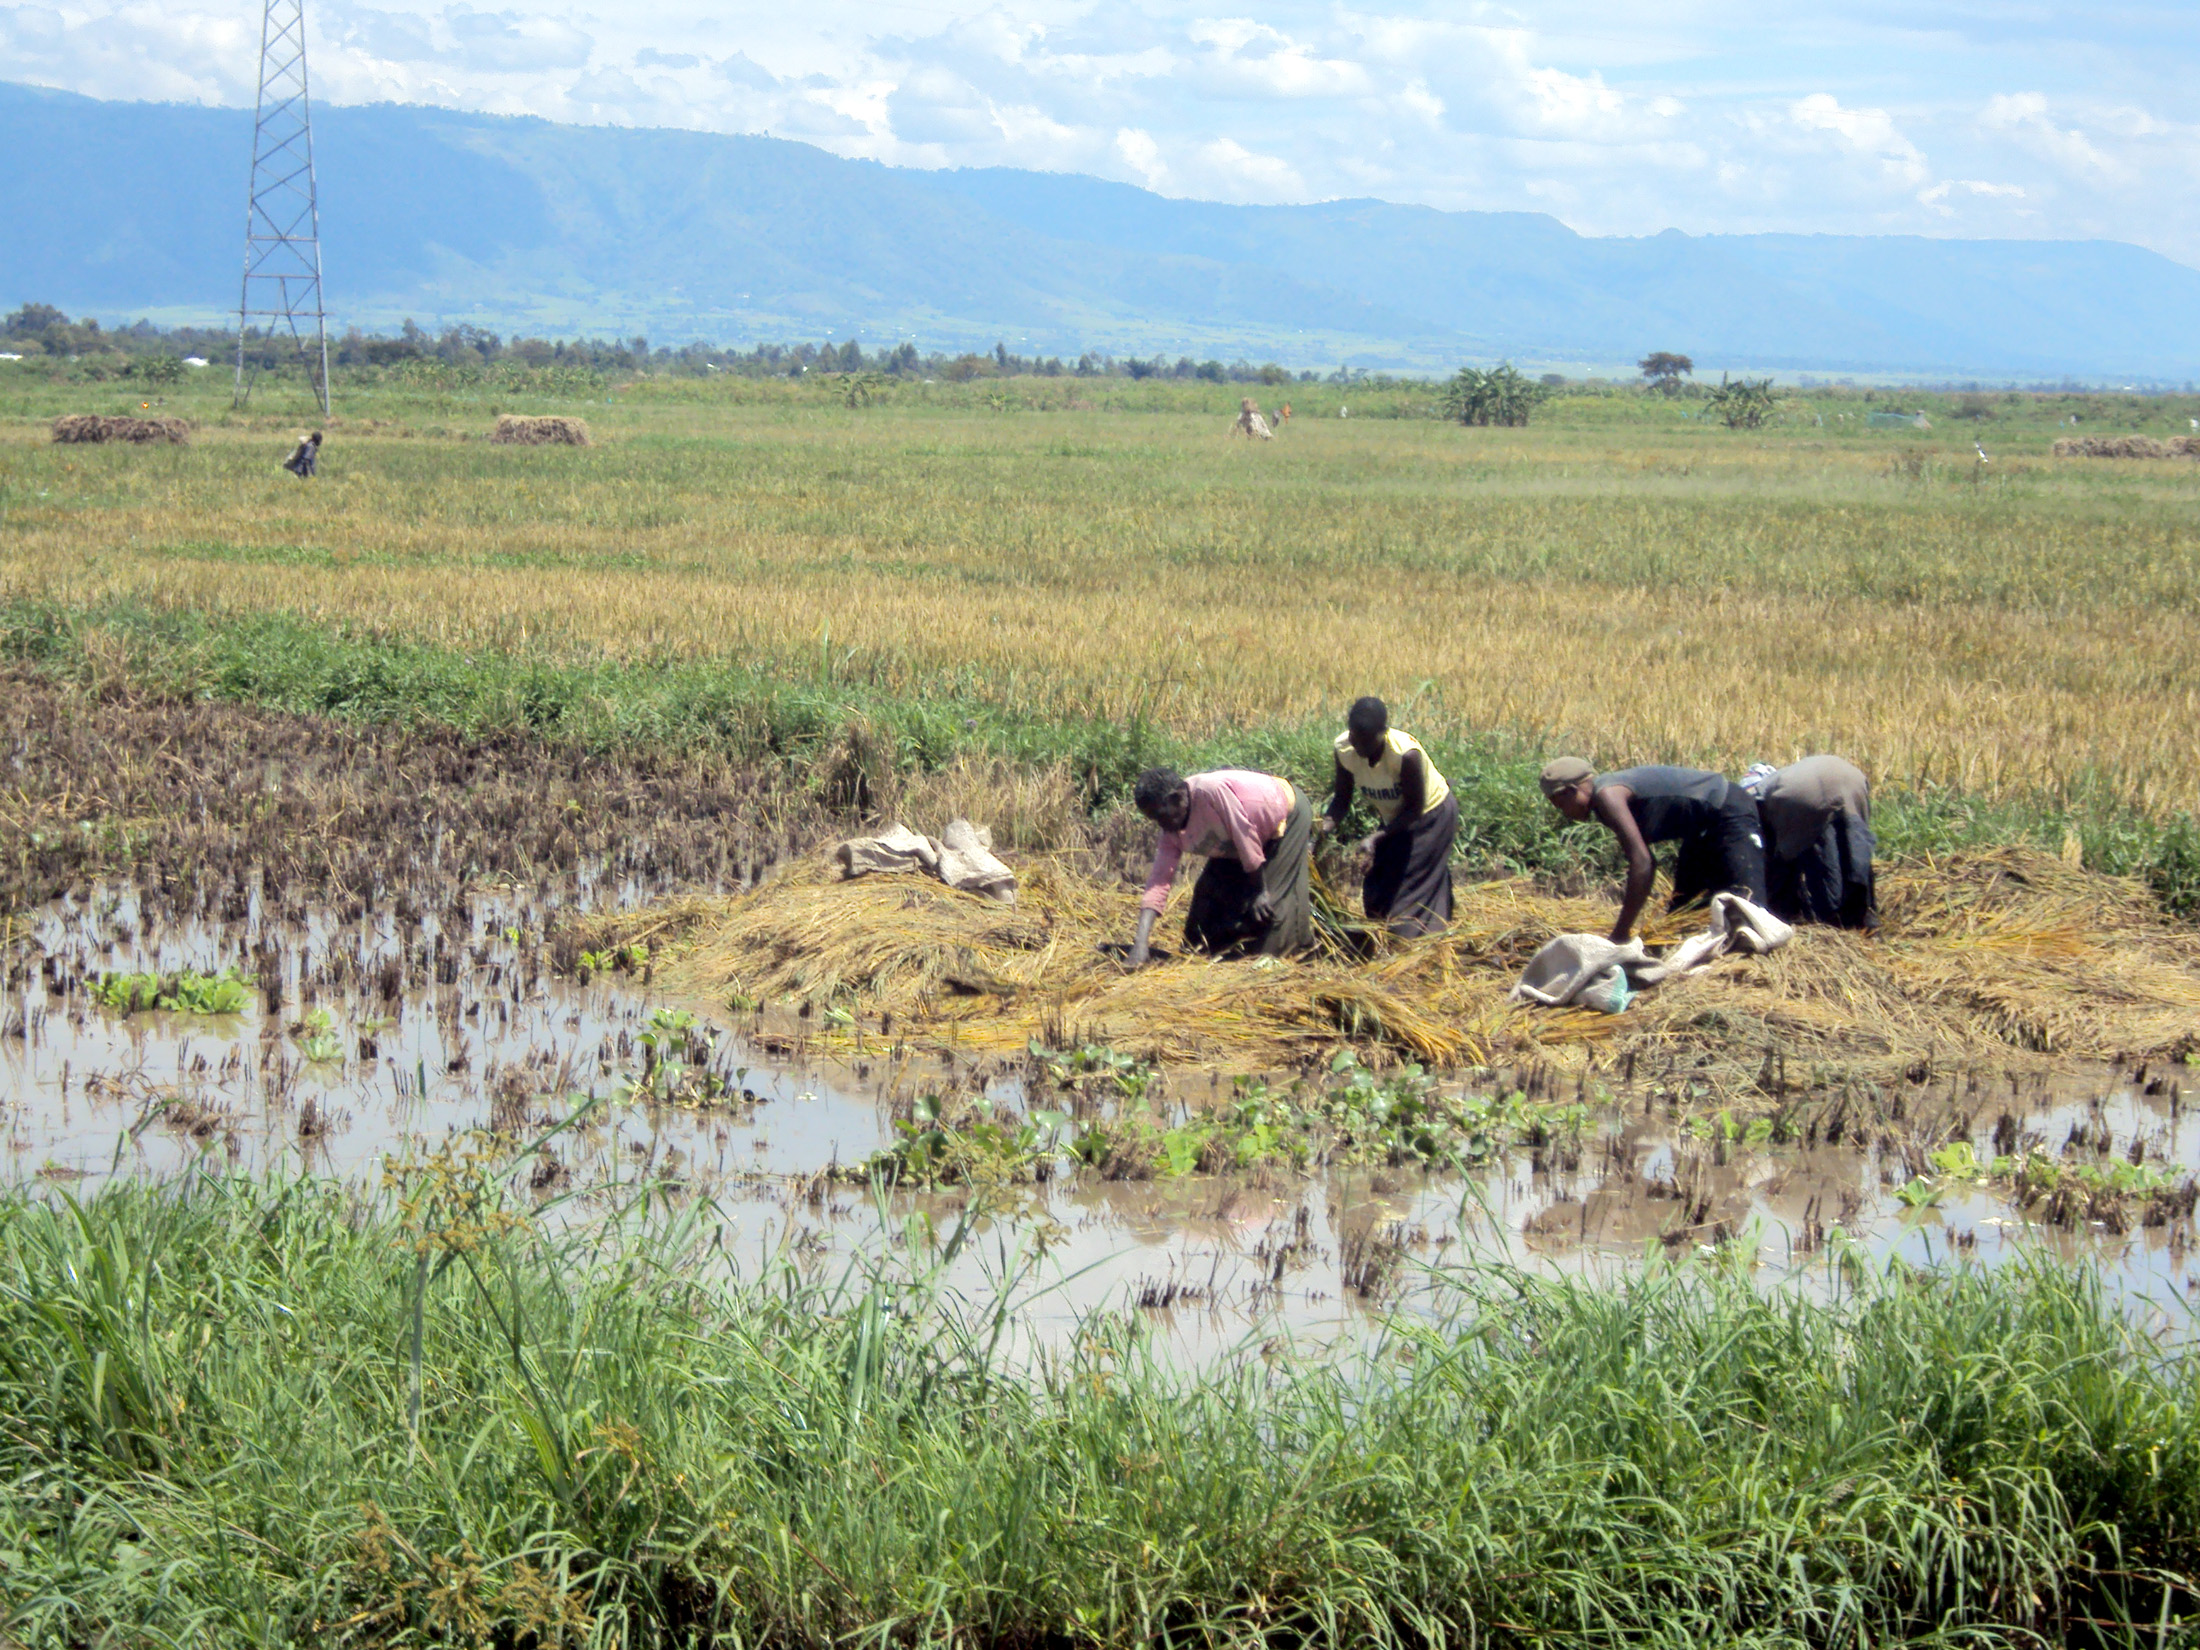 Floods in Kano plains have washed away farmers' rice harvests